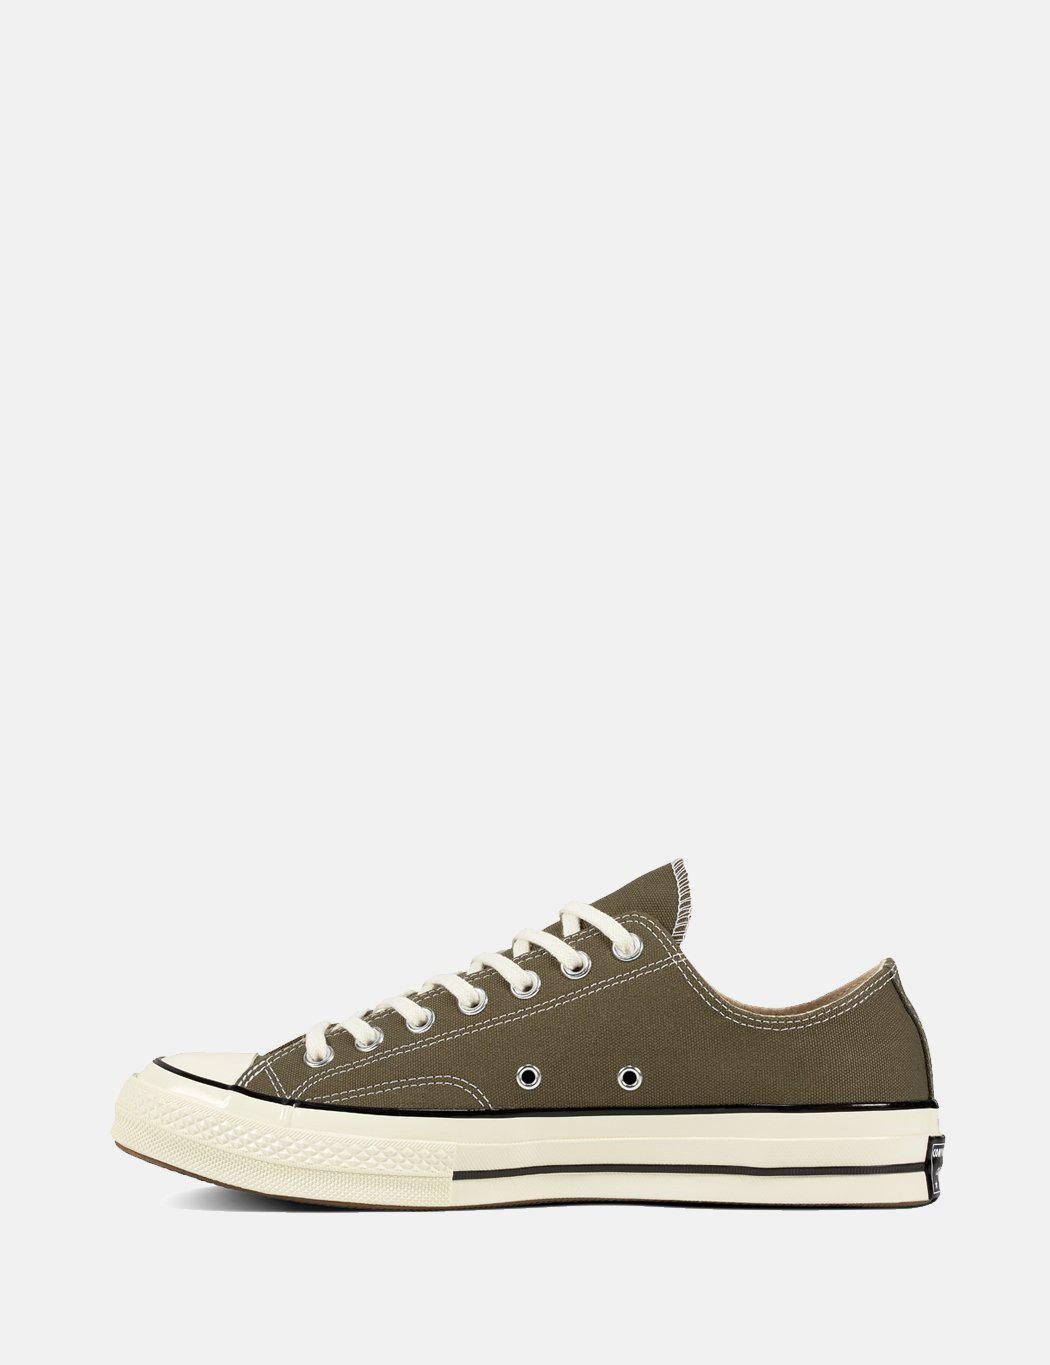 78dcb13920dc Lyst - Converse 70 s Chuck Low 162060c (canvas) in Green for Men